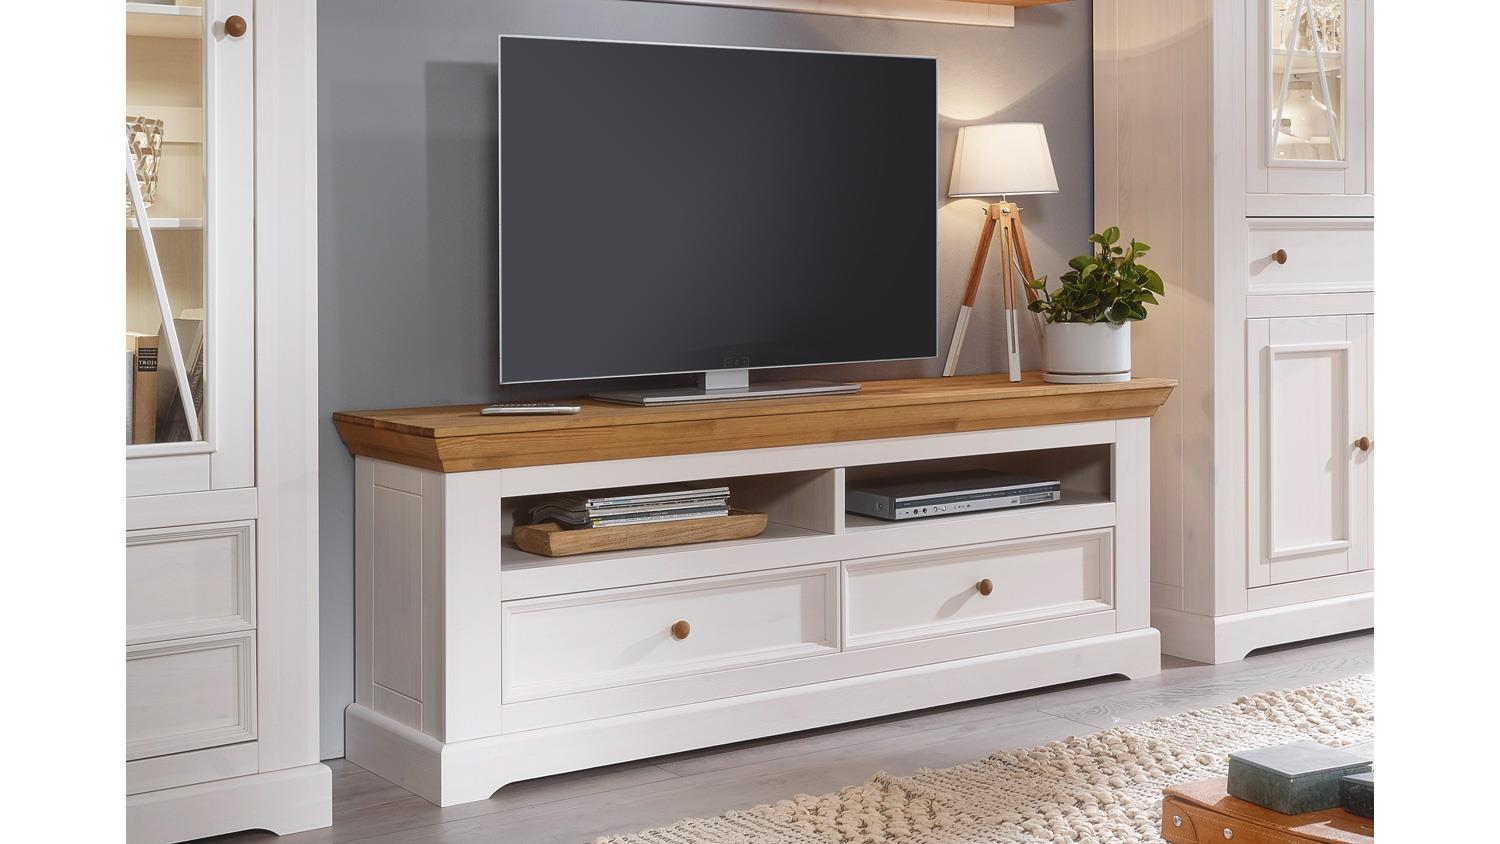 lowboard 2 glora tv board kiefer massiv wei gewachst eiche landhaus. Black Bedroom Furniture Sets. Home Design Ideas